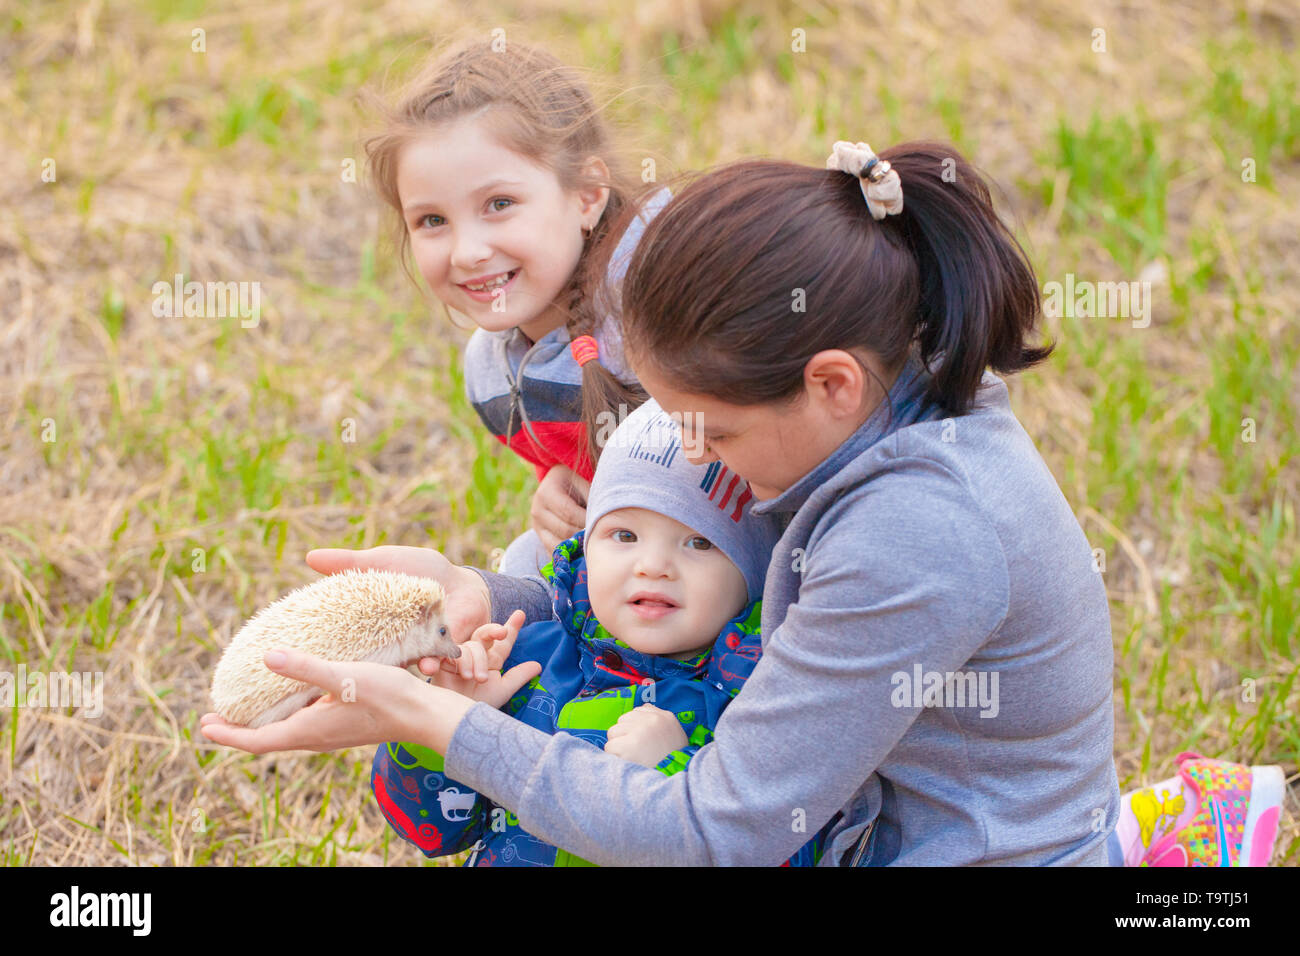 The concept of a happy family. Children play with a hedgehog. Mom walks with the babies. - Stock Image